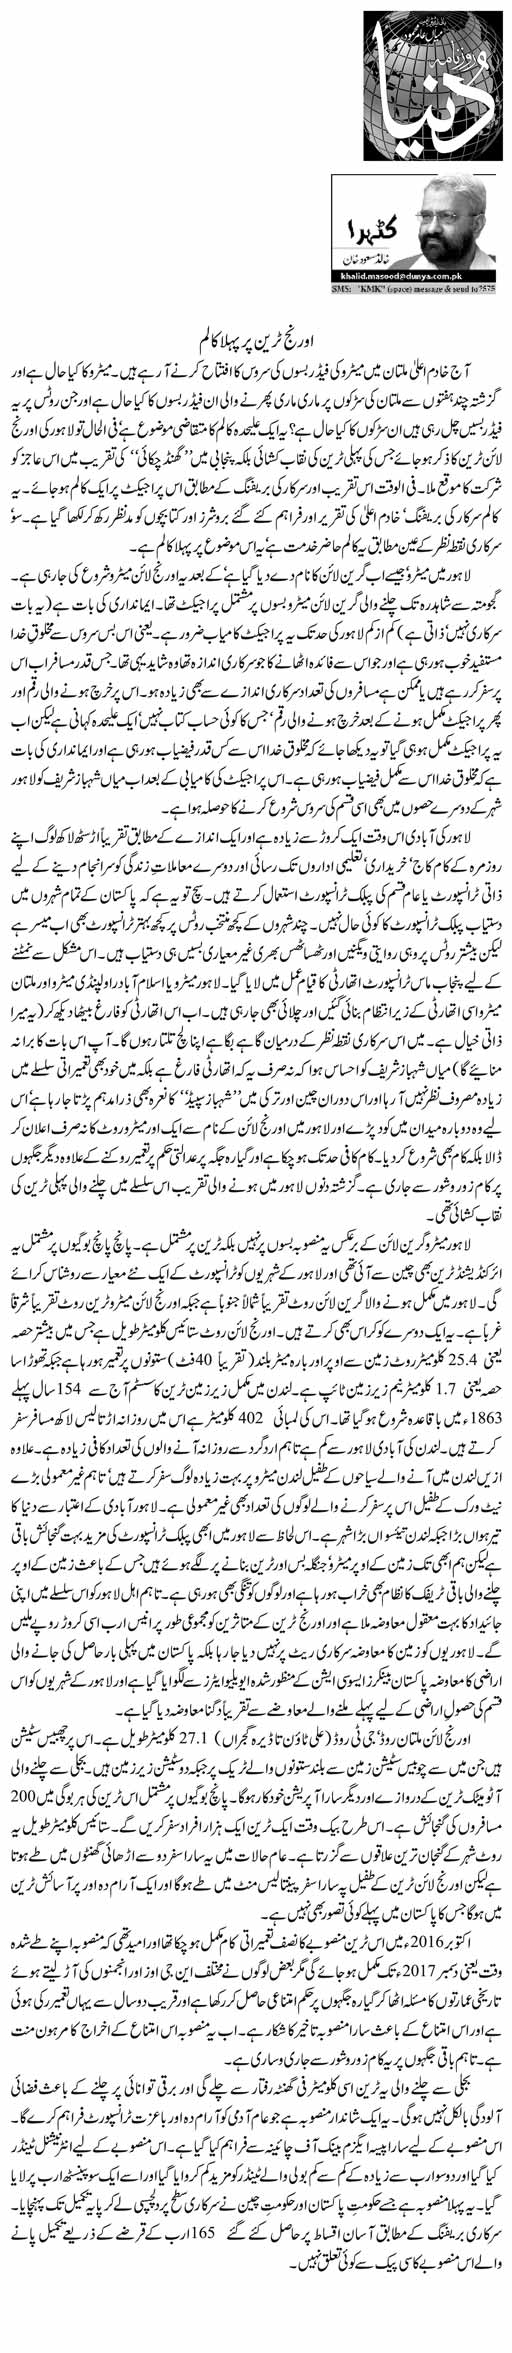 Orange Train Per Pehla Column | Khalid Masood Khan | Daily Urdu Columns